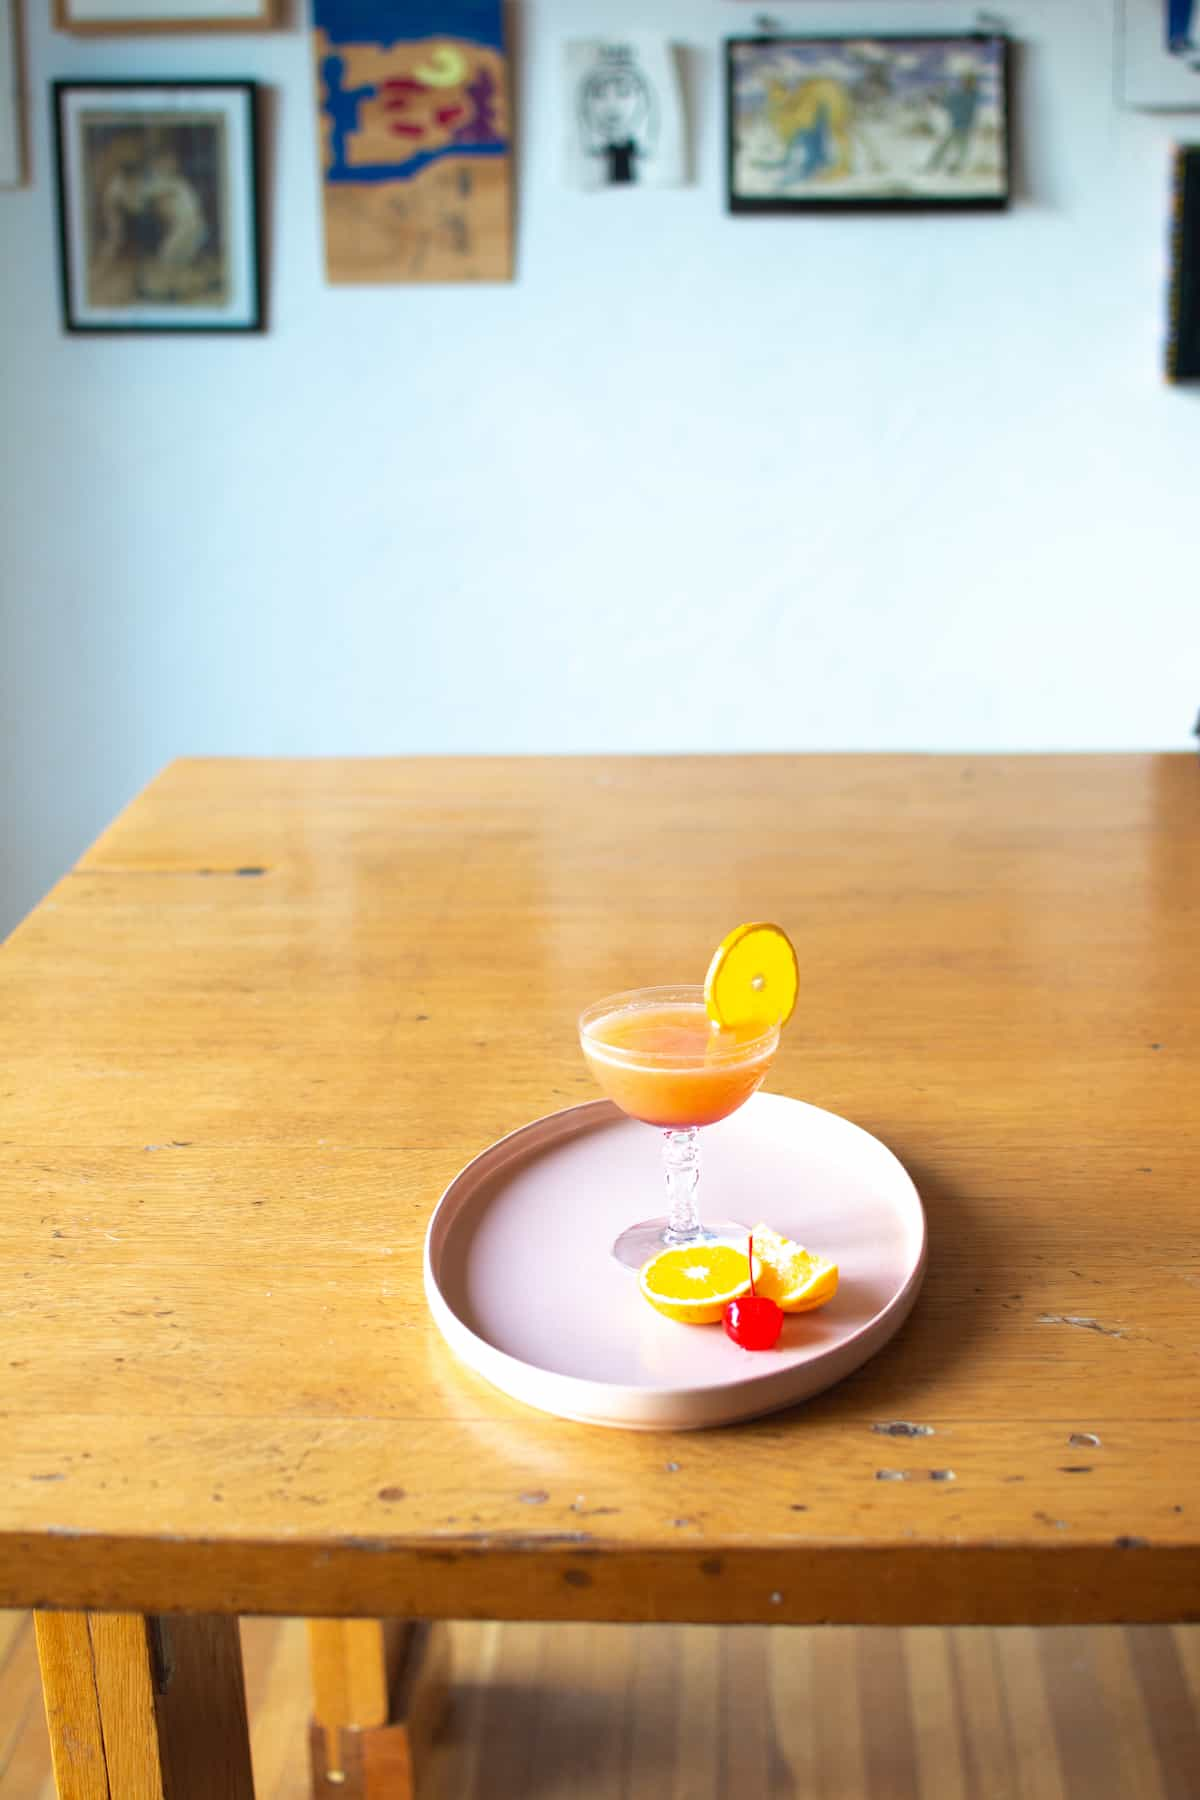 A tequila sunrise cocktail sitting on a pink plate with an orange and cherry on the plate.